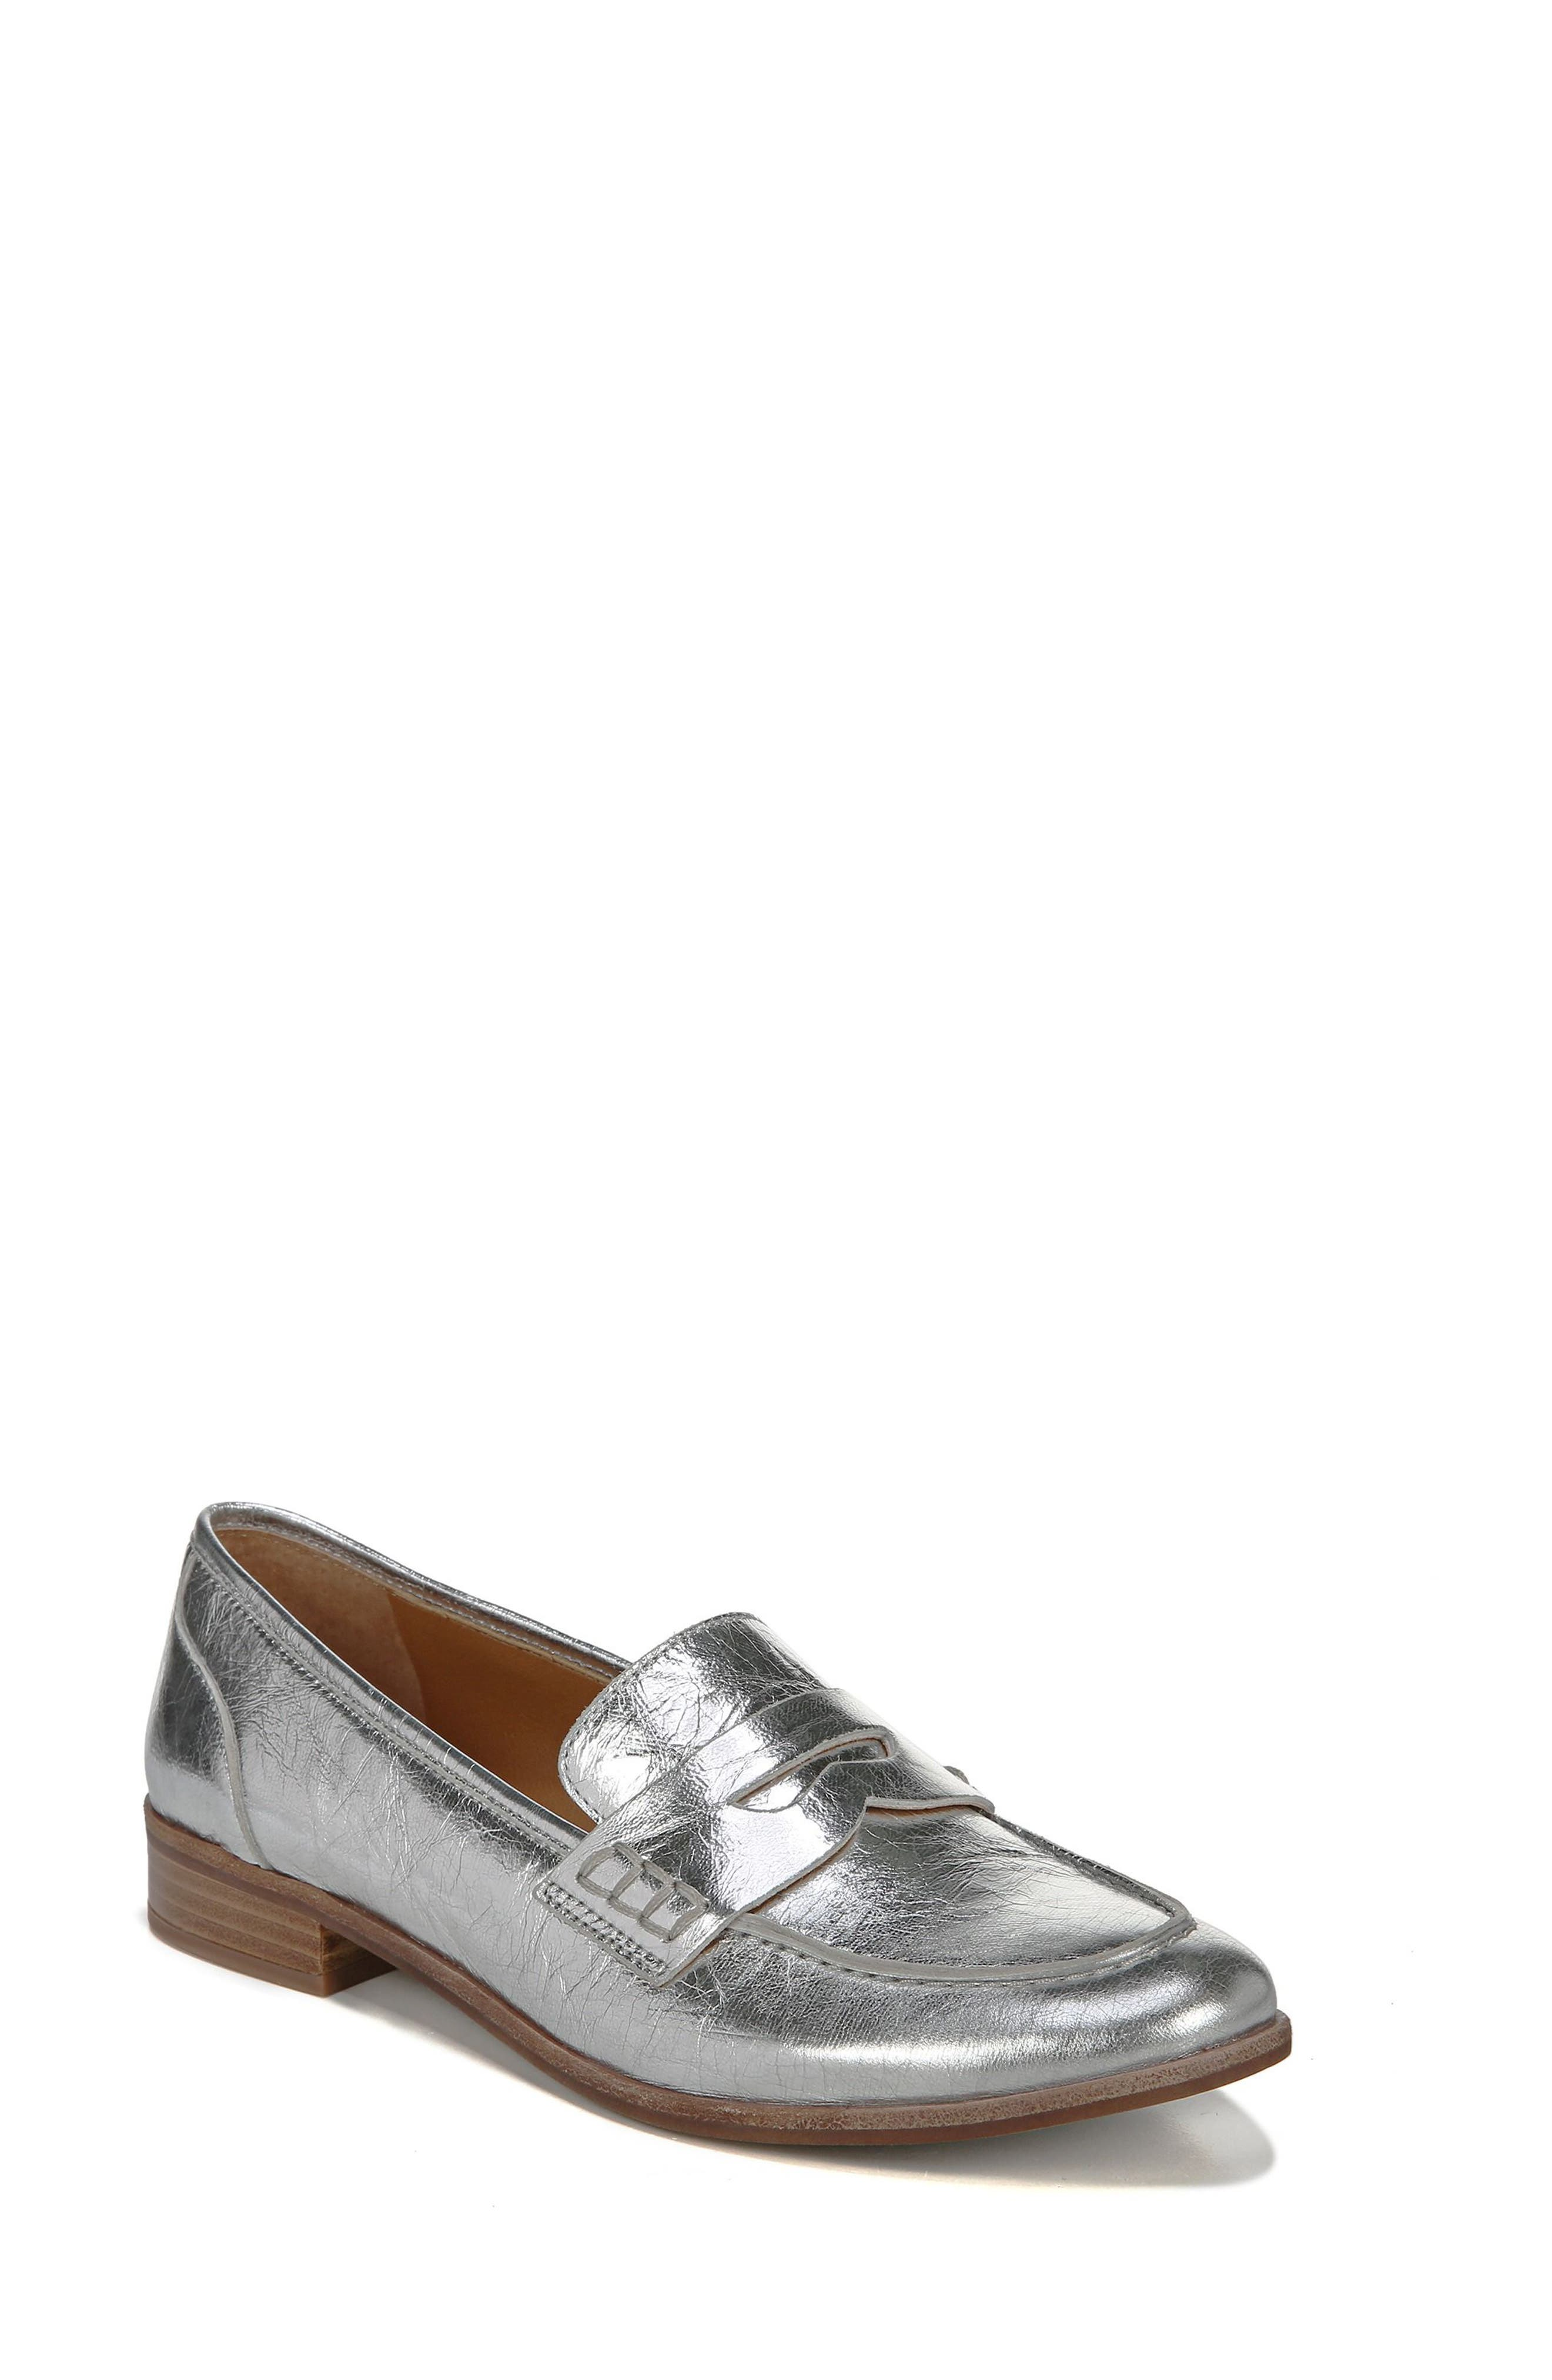 'Jolette' Penny Loafer,                             Main thumbnail 5, color,